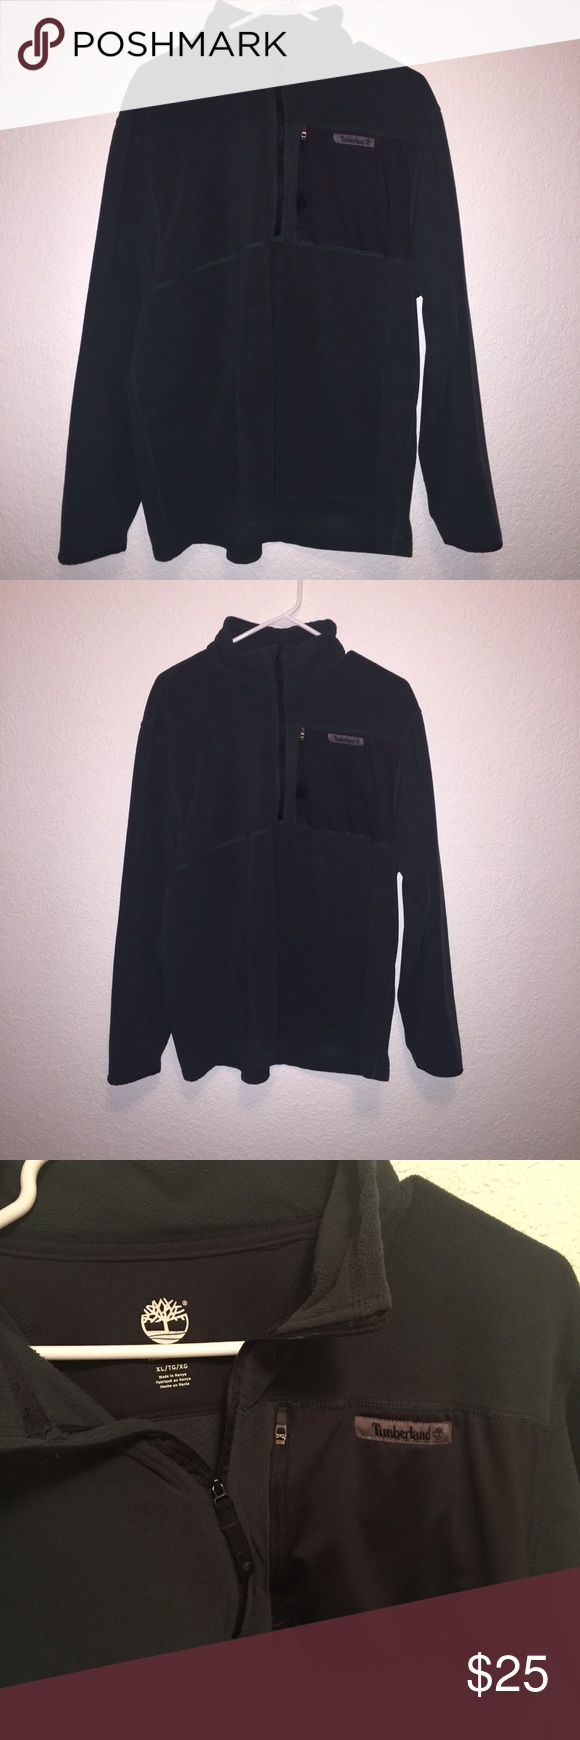 Men's timberland jacket Men's size XL  Color: Dark Green Condition: great/ no flaws Timberland Jackets & Coats